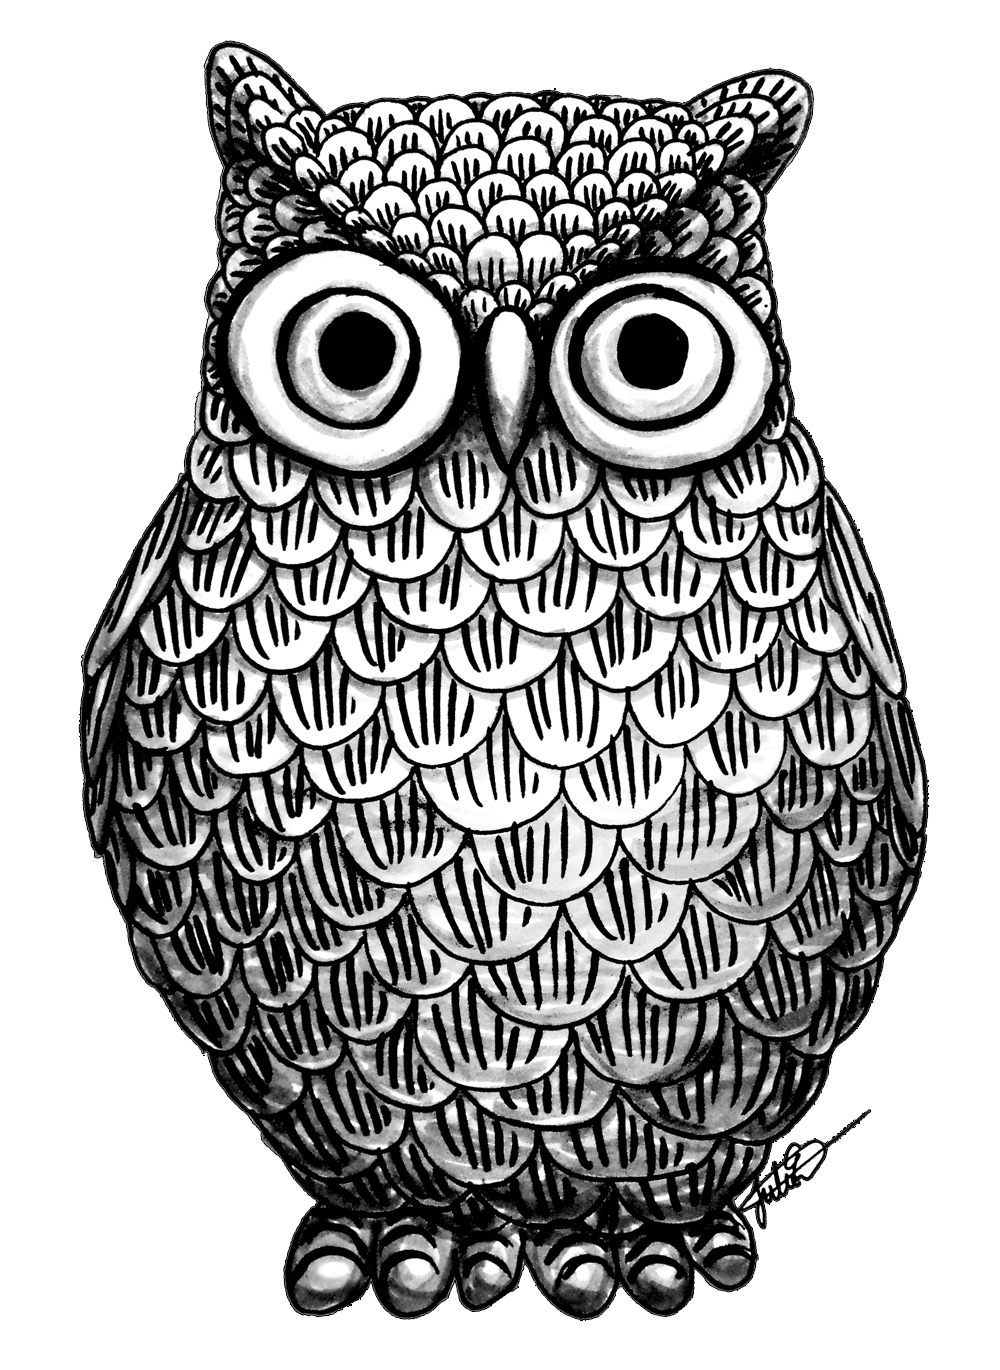 Cute Owl Drawings Png Free Cute Owl Drawings Png Transparent Images 144517 Pngio